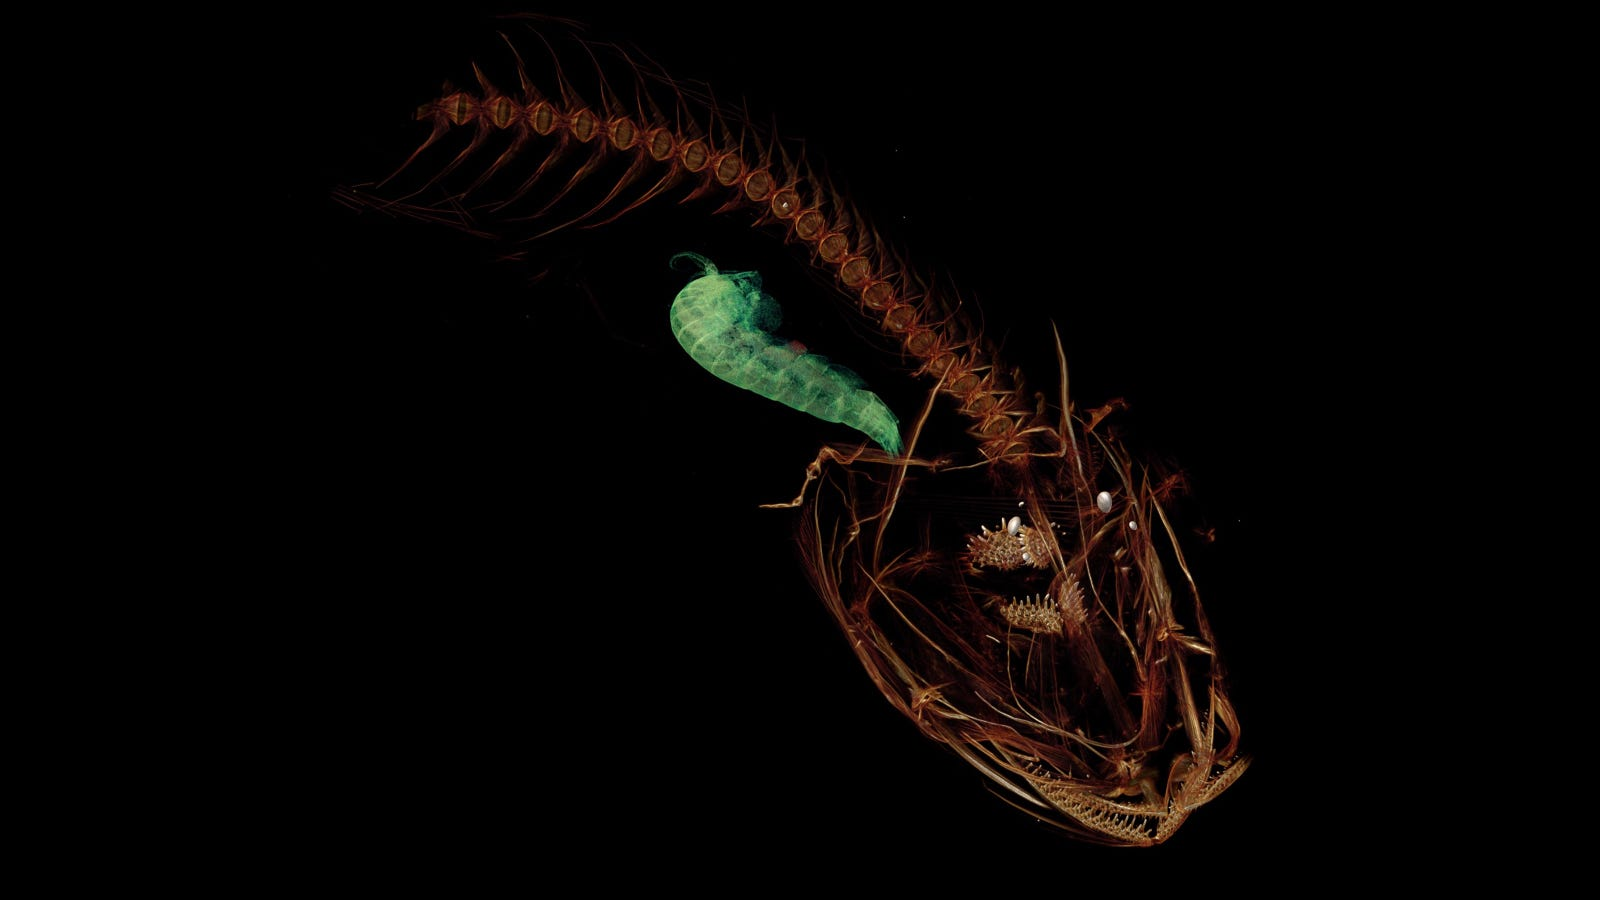 World's Deepest-Living Fish Found Five Miles Beneath the Sea Surface